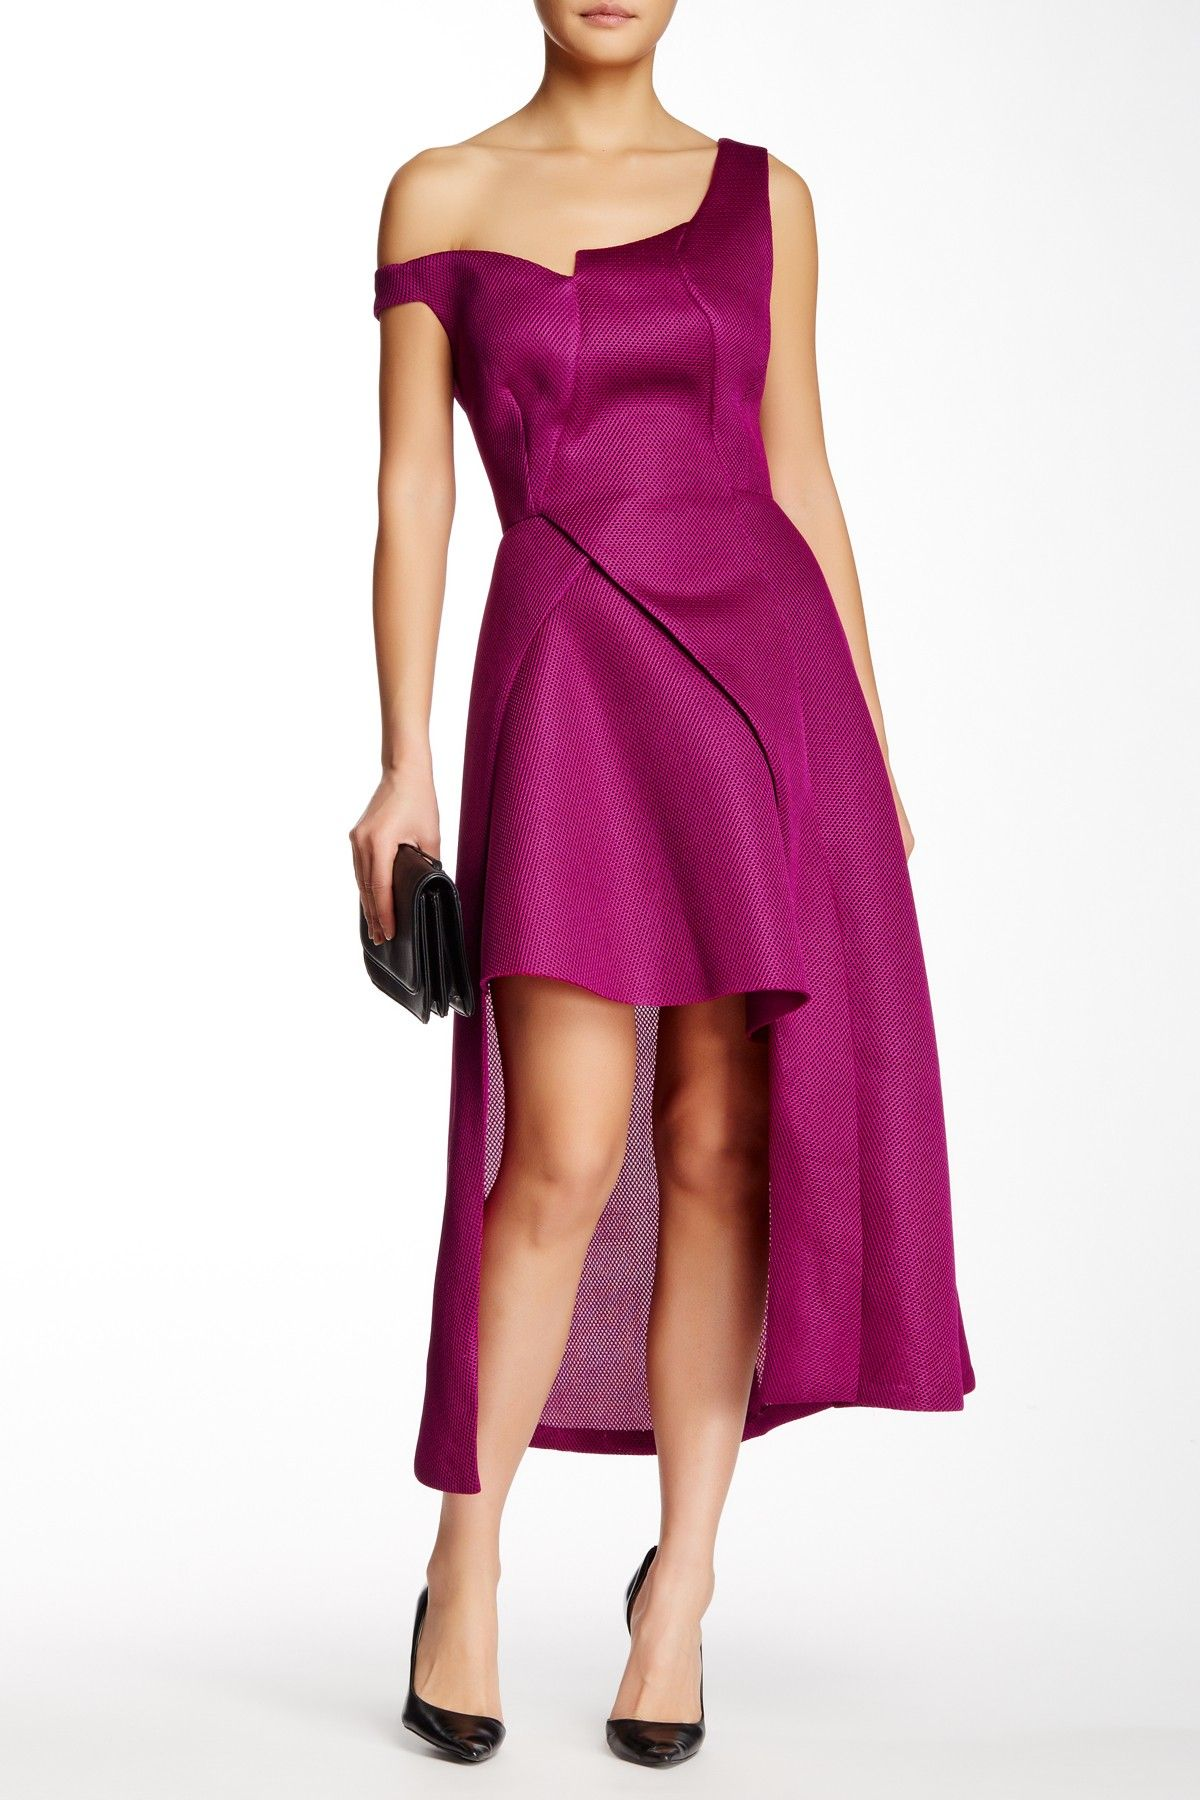 Off-the-Shoulder Dress by Issue New York on @HauteLook | Things I ...